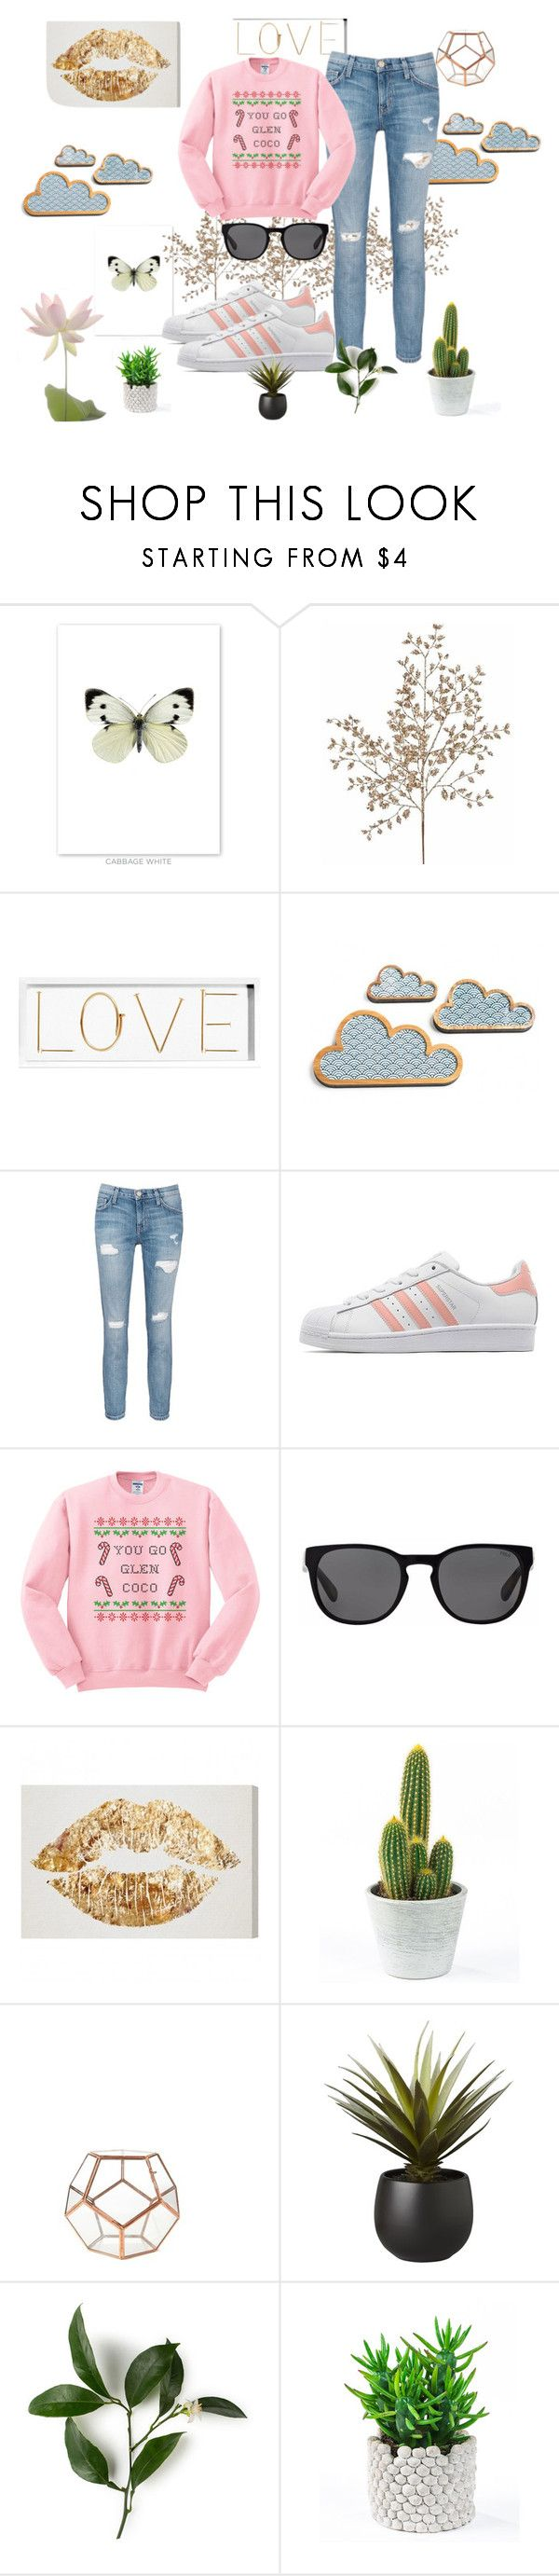 """http://www.polyvore.com/cgi/group.join?id=198631."" by emina-h15 ❤ liked on Polyvore featuring Oliver Gal Artist Co., Current/Elliott, adidas Originals, Polo Ralph Lauren and CB2"